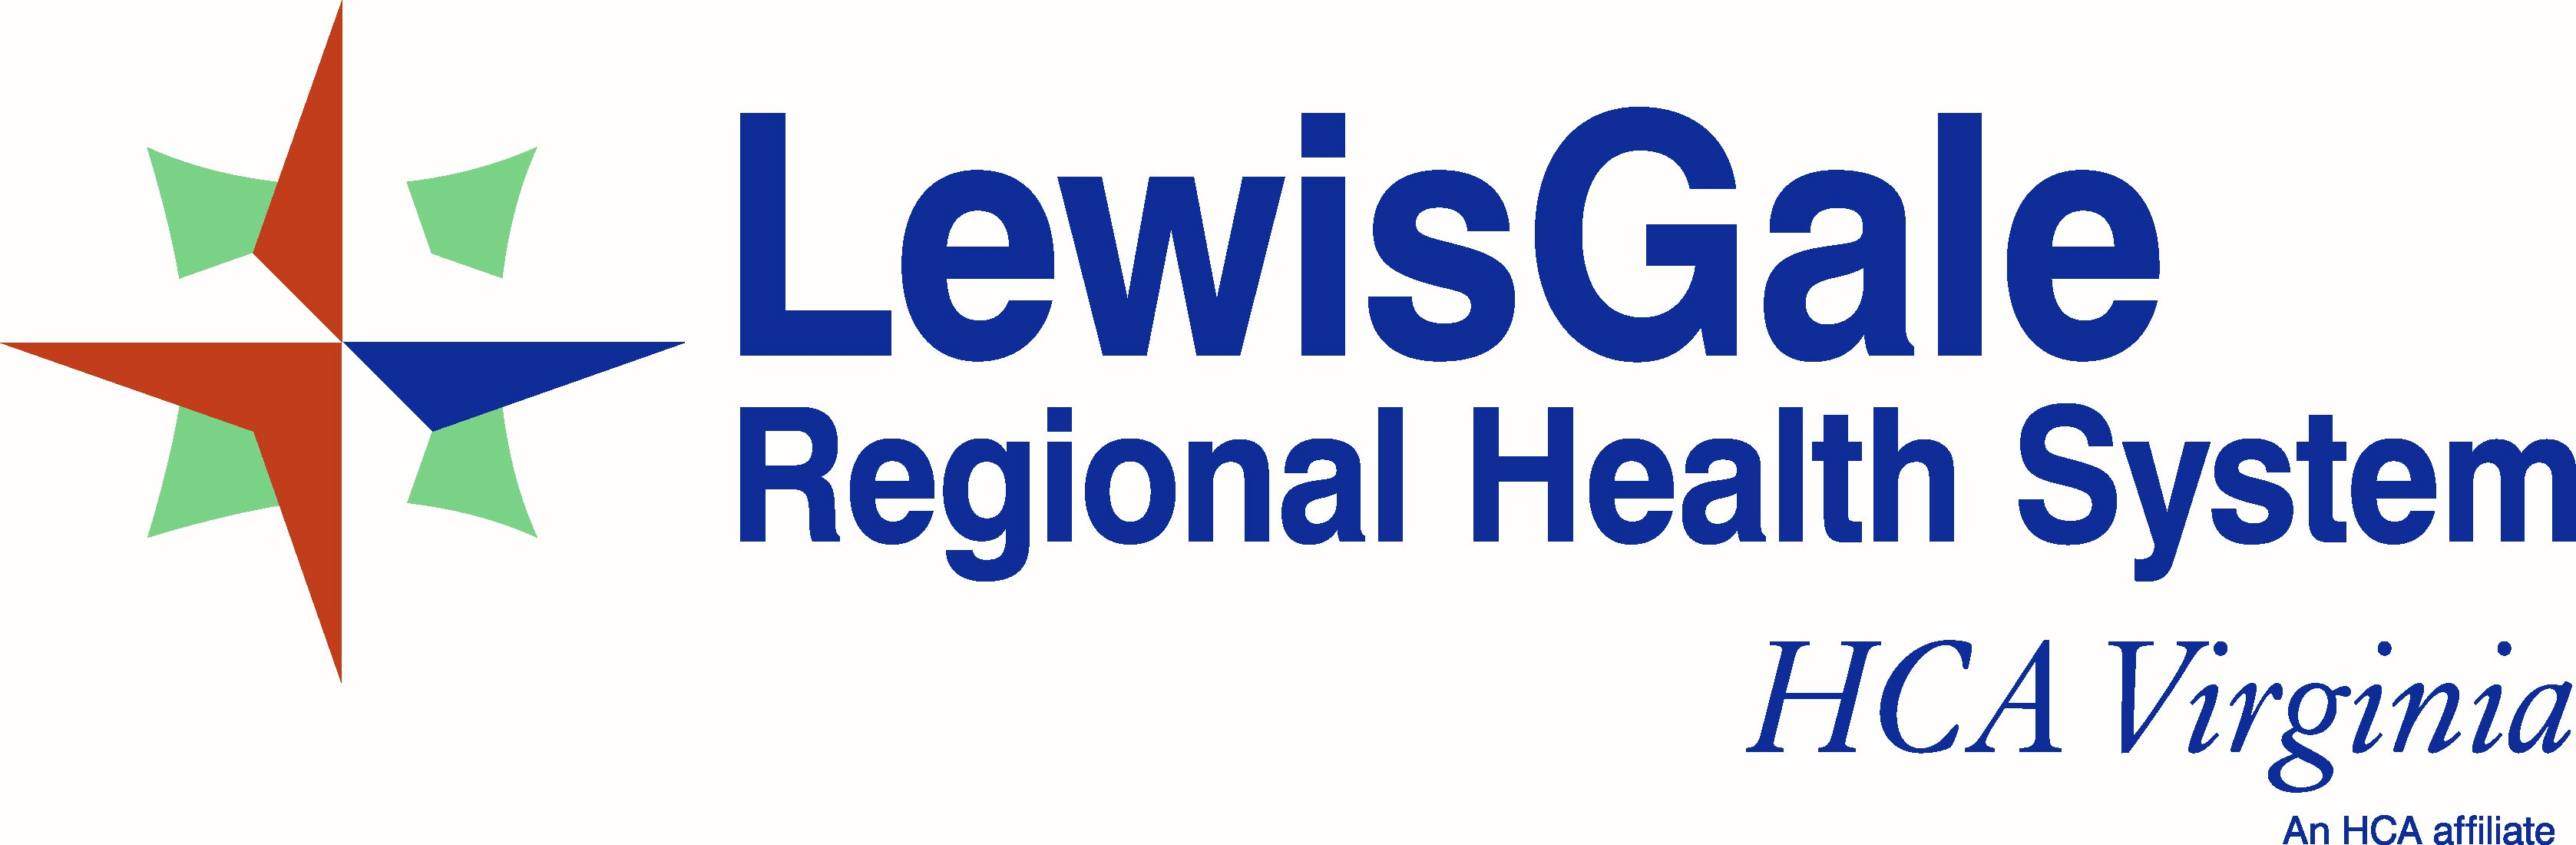 Lewis Gale Medical Center